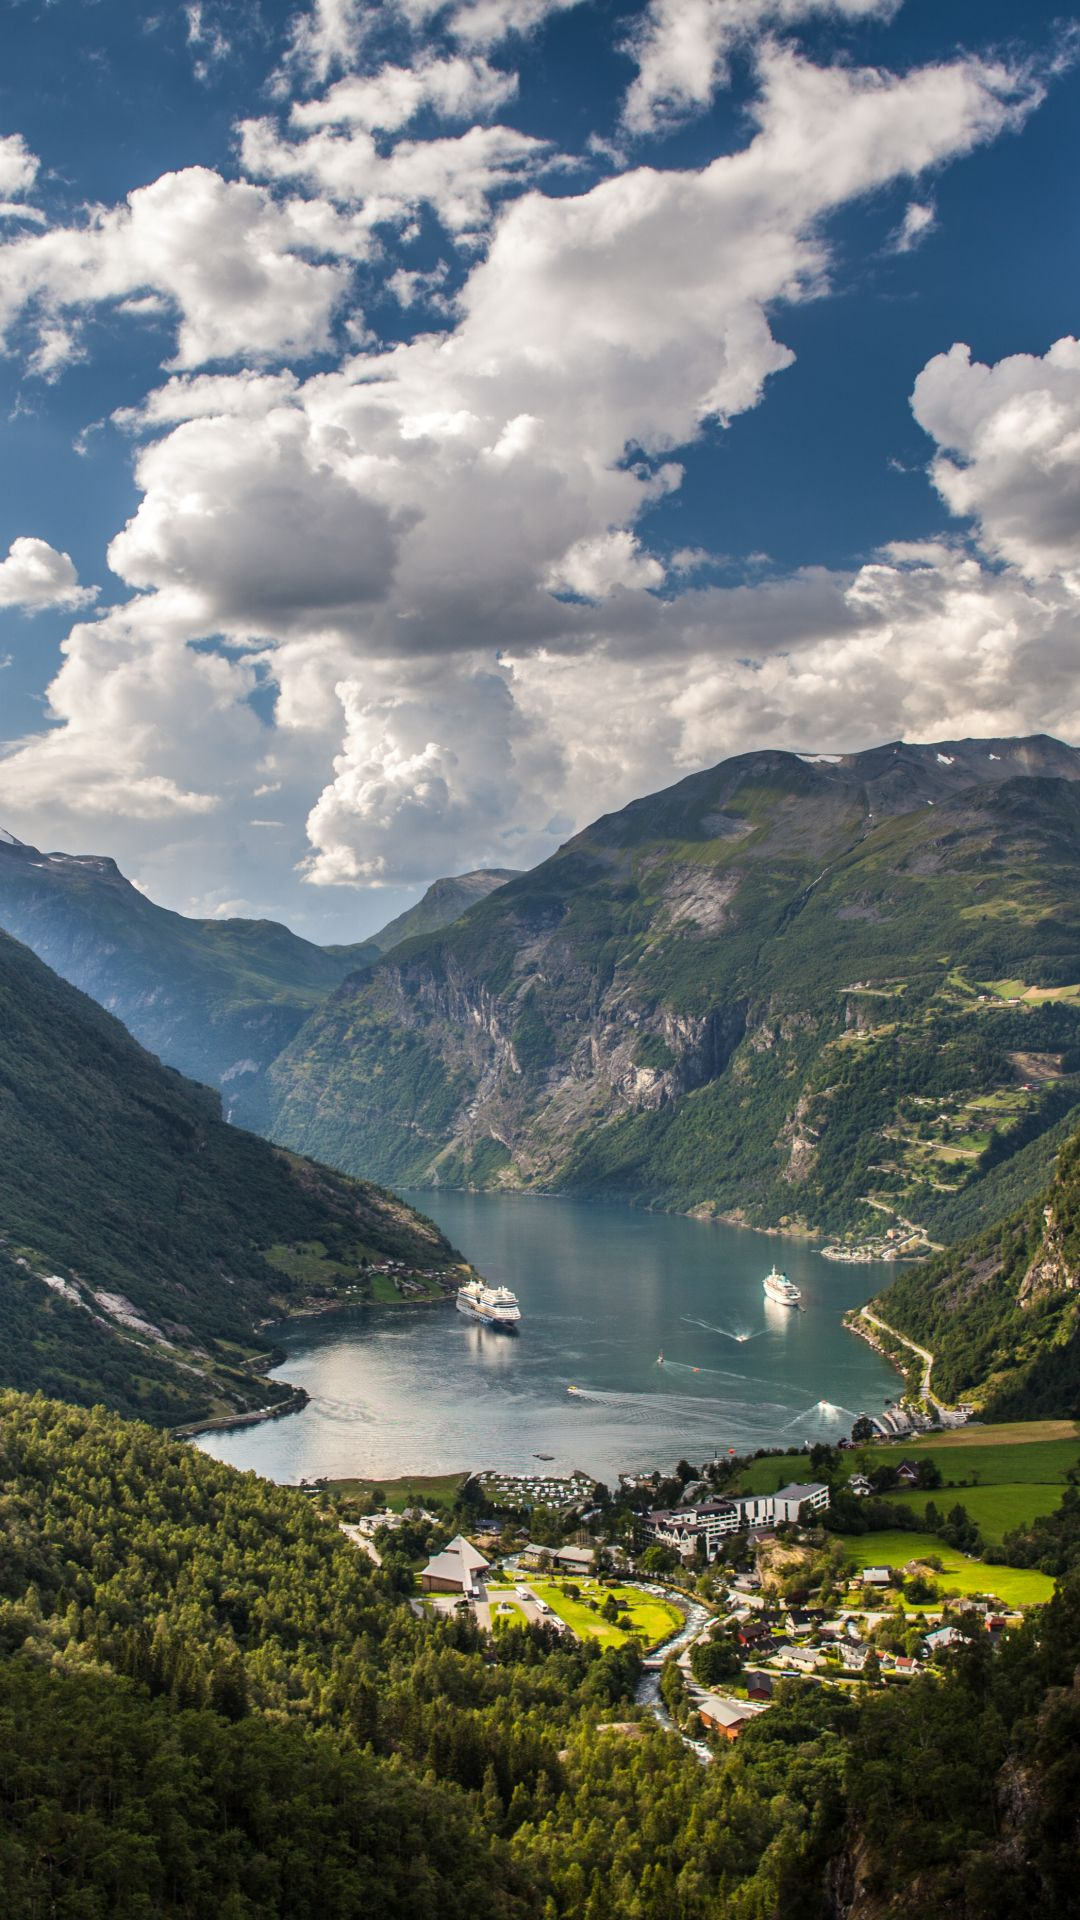 Earth Geirangerfjord Cloud Cruise Ship Fjord Geiranger Mountain Norway Scandinavia 1080x1920 Cool Wallpapers For Phones Live Wallpaper Iphone Norway Wallpaper